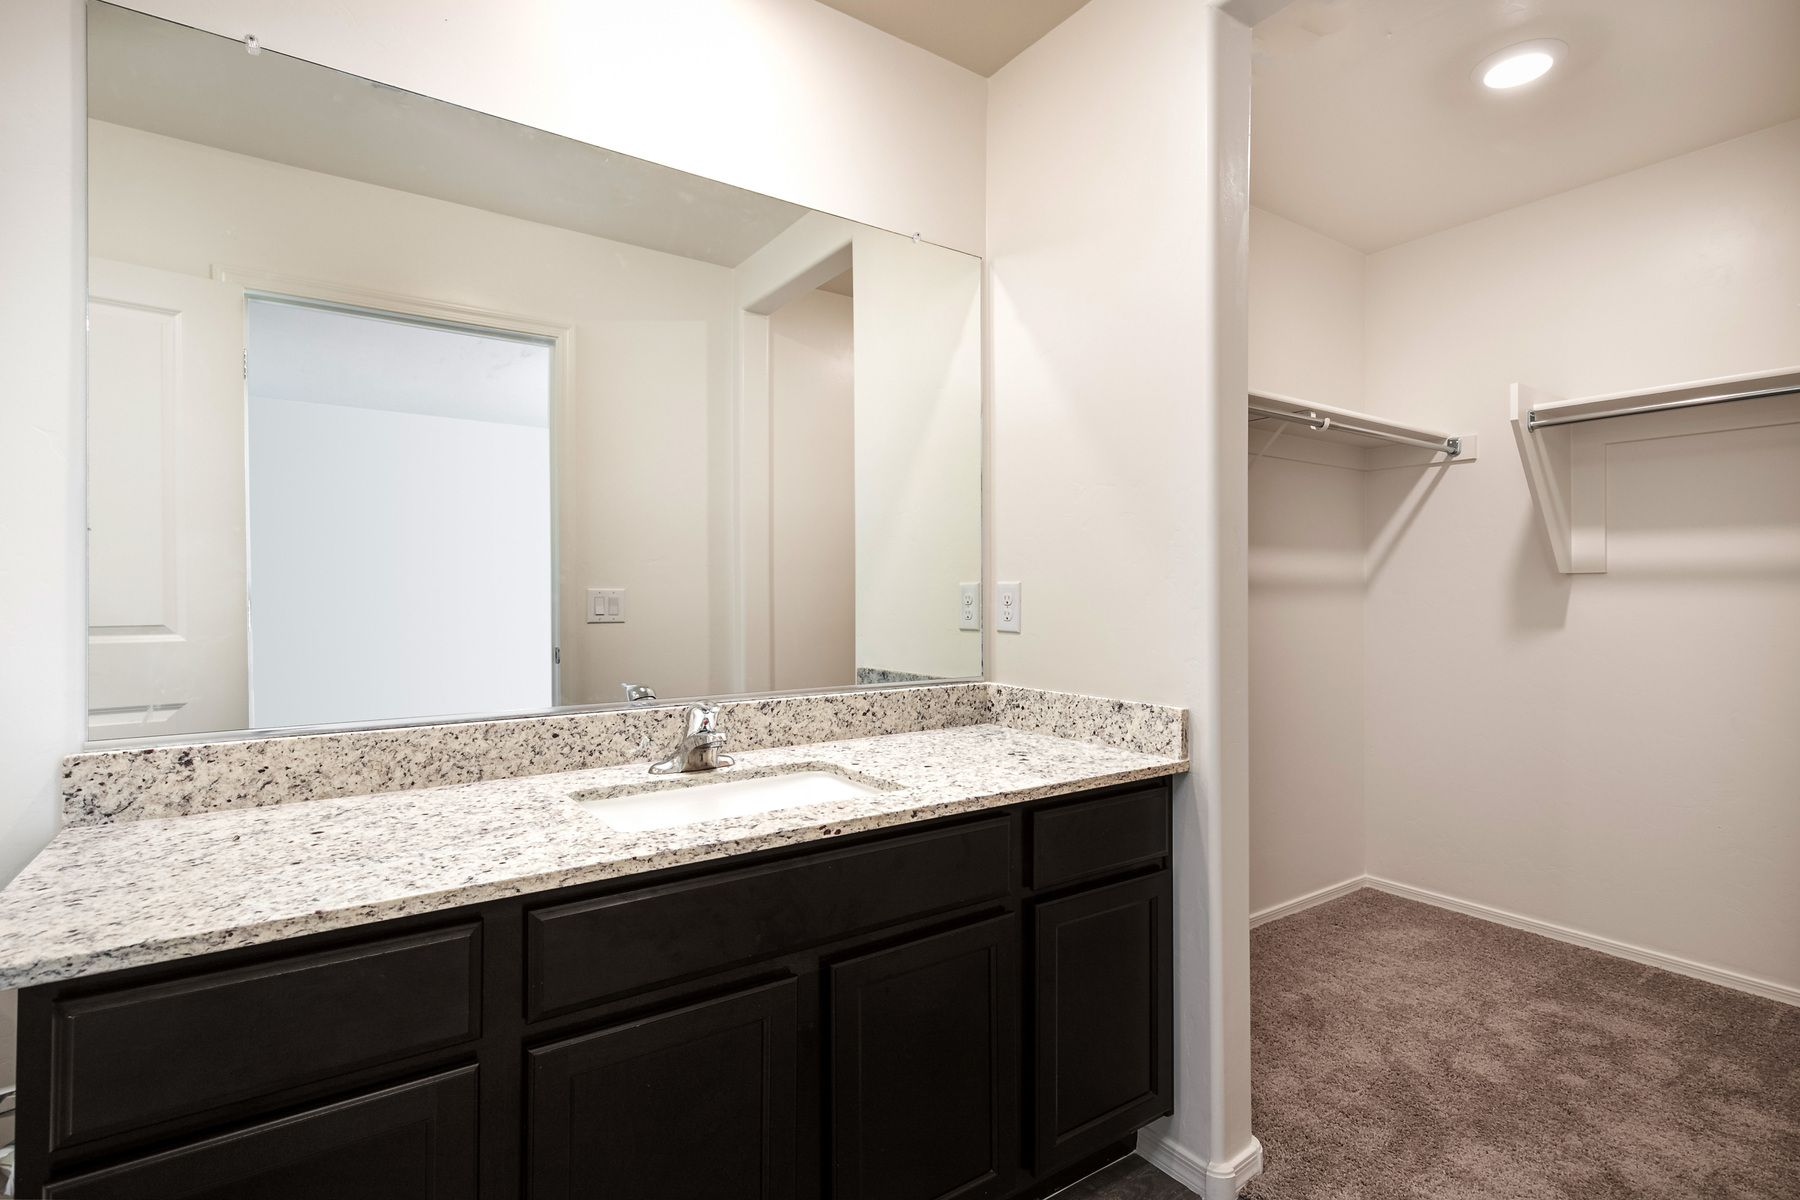 Bathroom featured in the Alamo By LGI Homes in Tucson, AZ